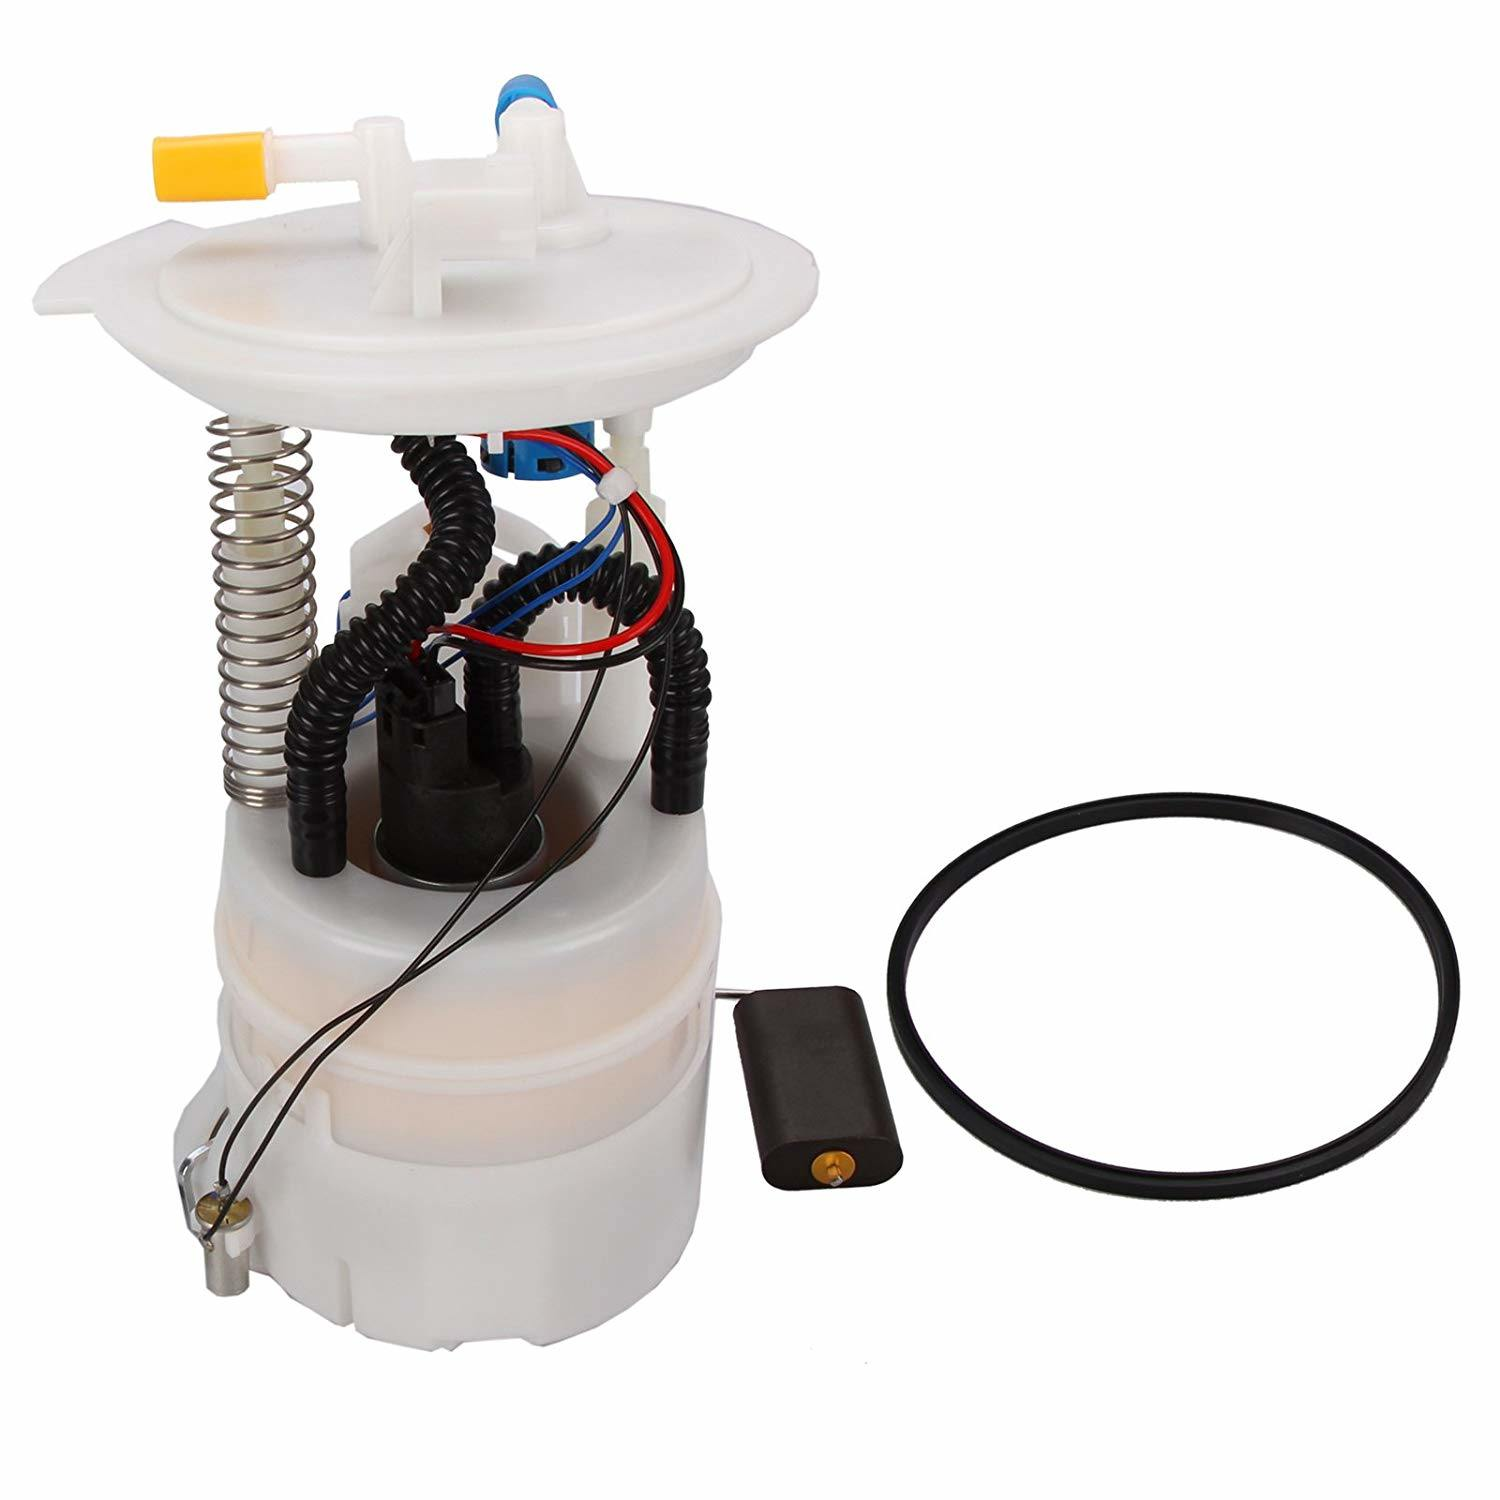 How Much Does A Fuel Pump Cost >> Hot Item Wholesale Fuel Pump Machine Fuel Pump Assembly E8545m Cost For Nissan